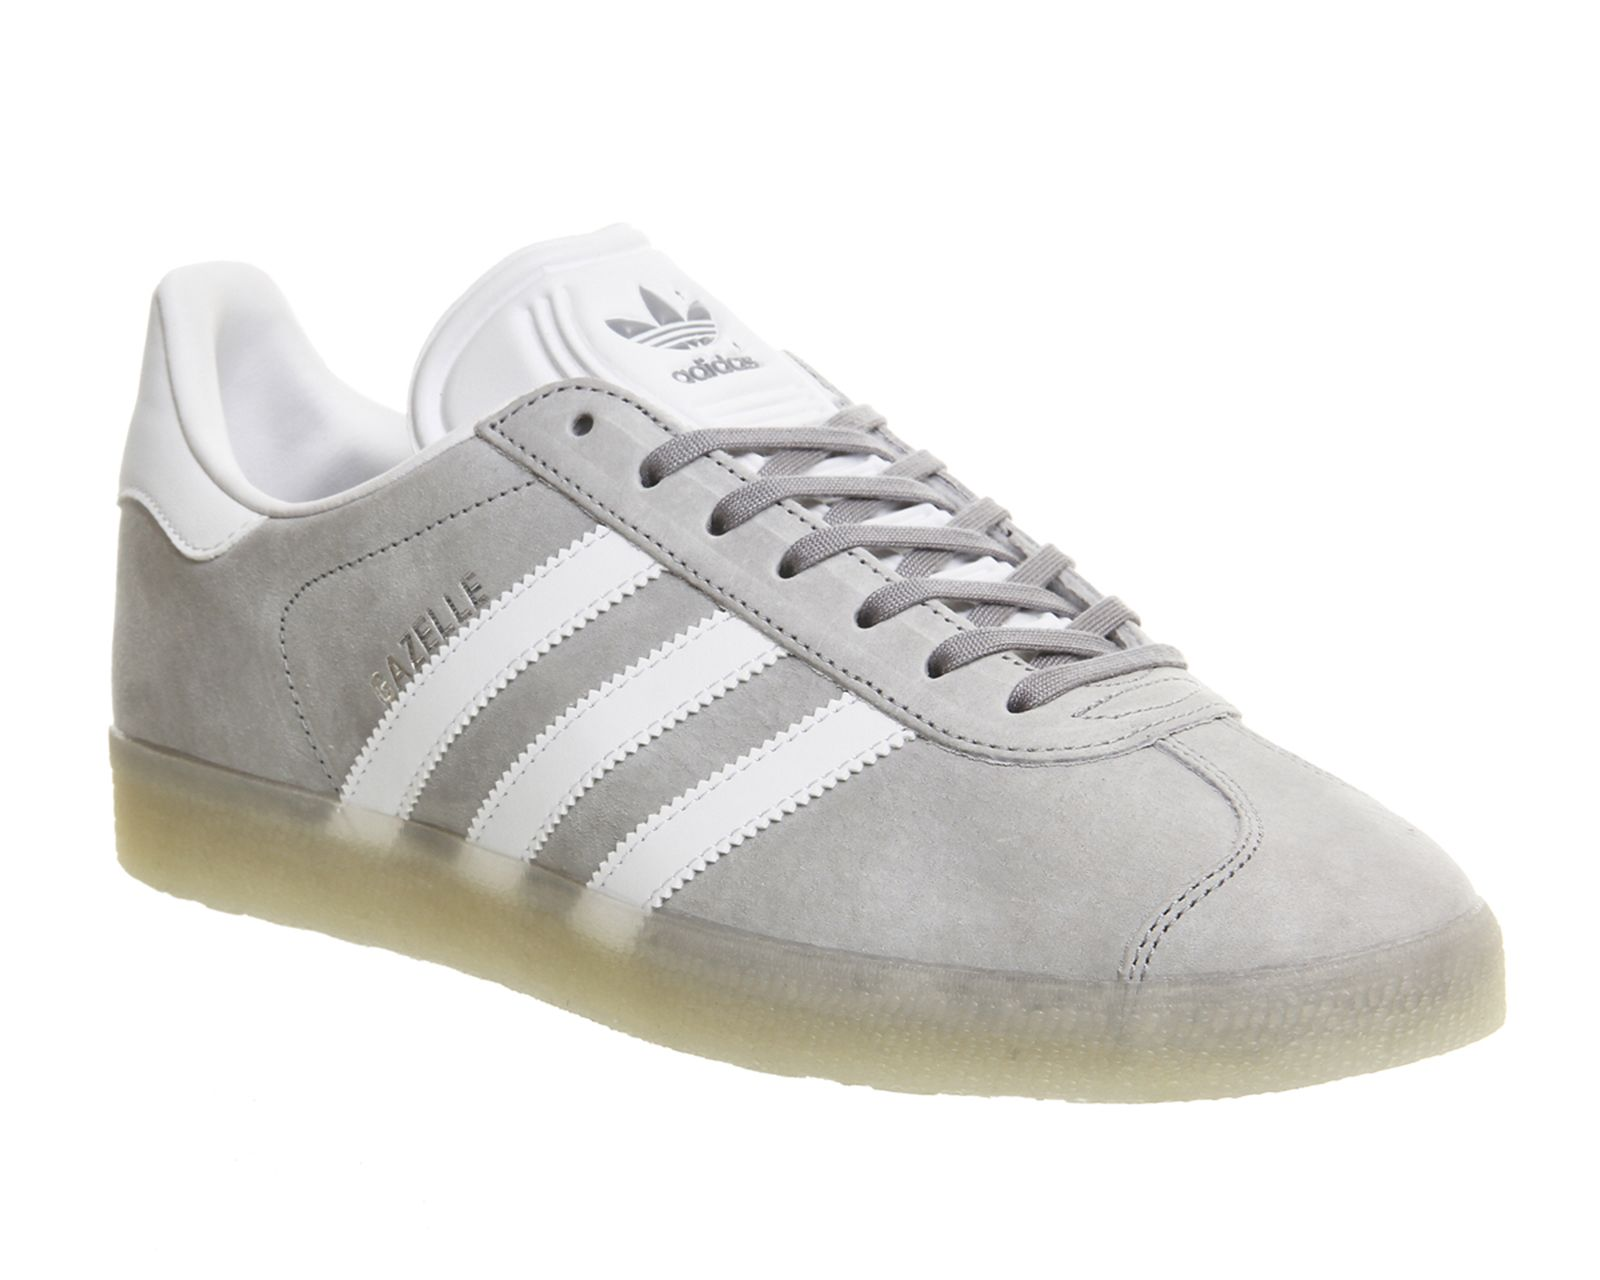 7ef304894afb ... buy mid grey white ice adidas gazelle from office.co.uk.